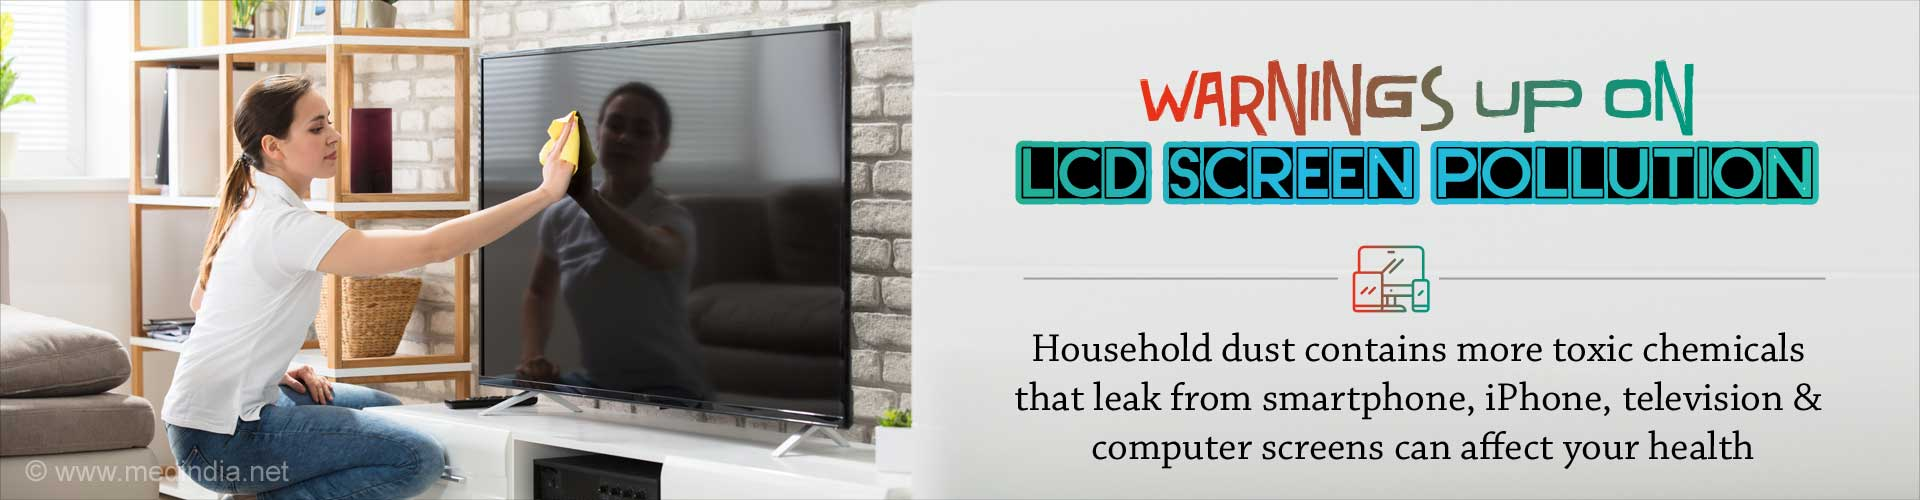 LCD Screen Pollution: Your Household Dust may Contain More Toxic Chemicals from